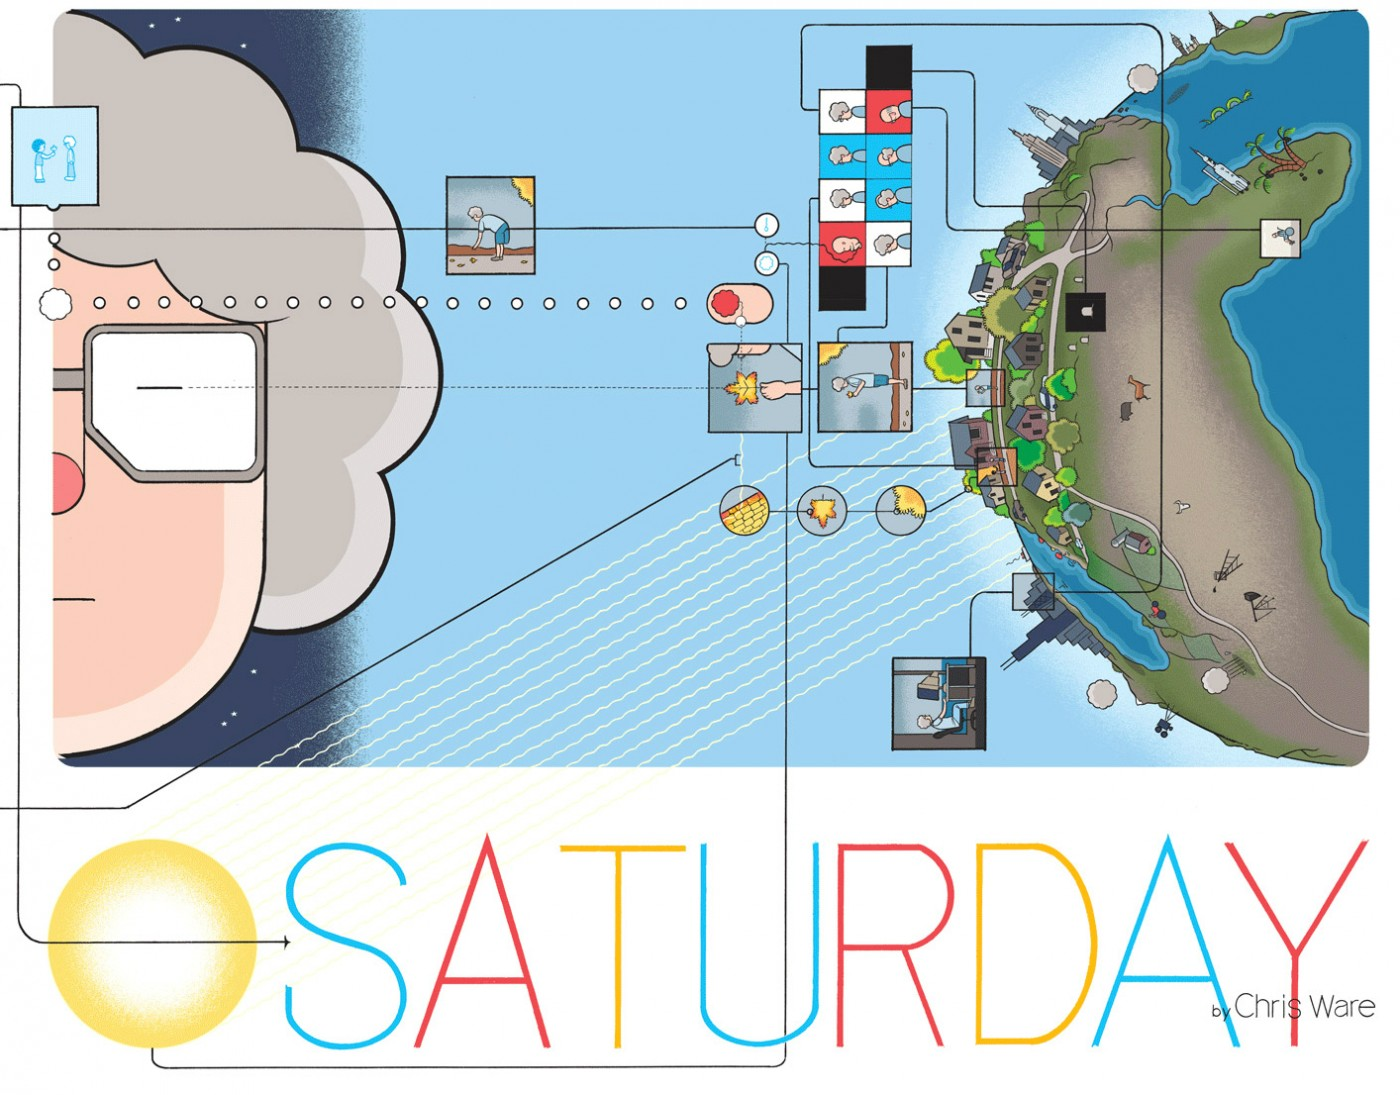 The Last Saturday: a HQ do Chris Ware pro Guardian – O fim?